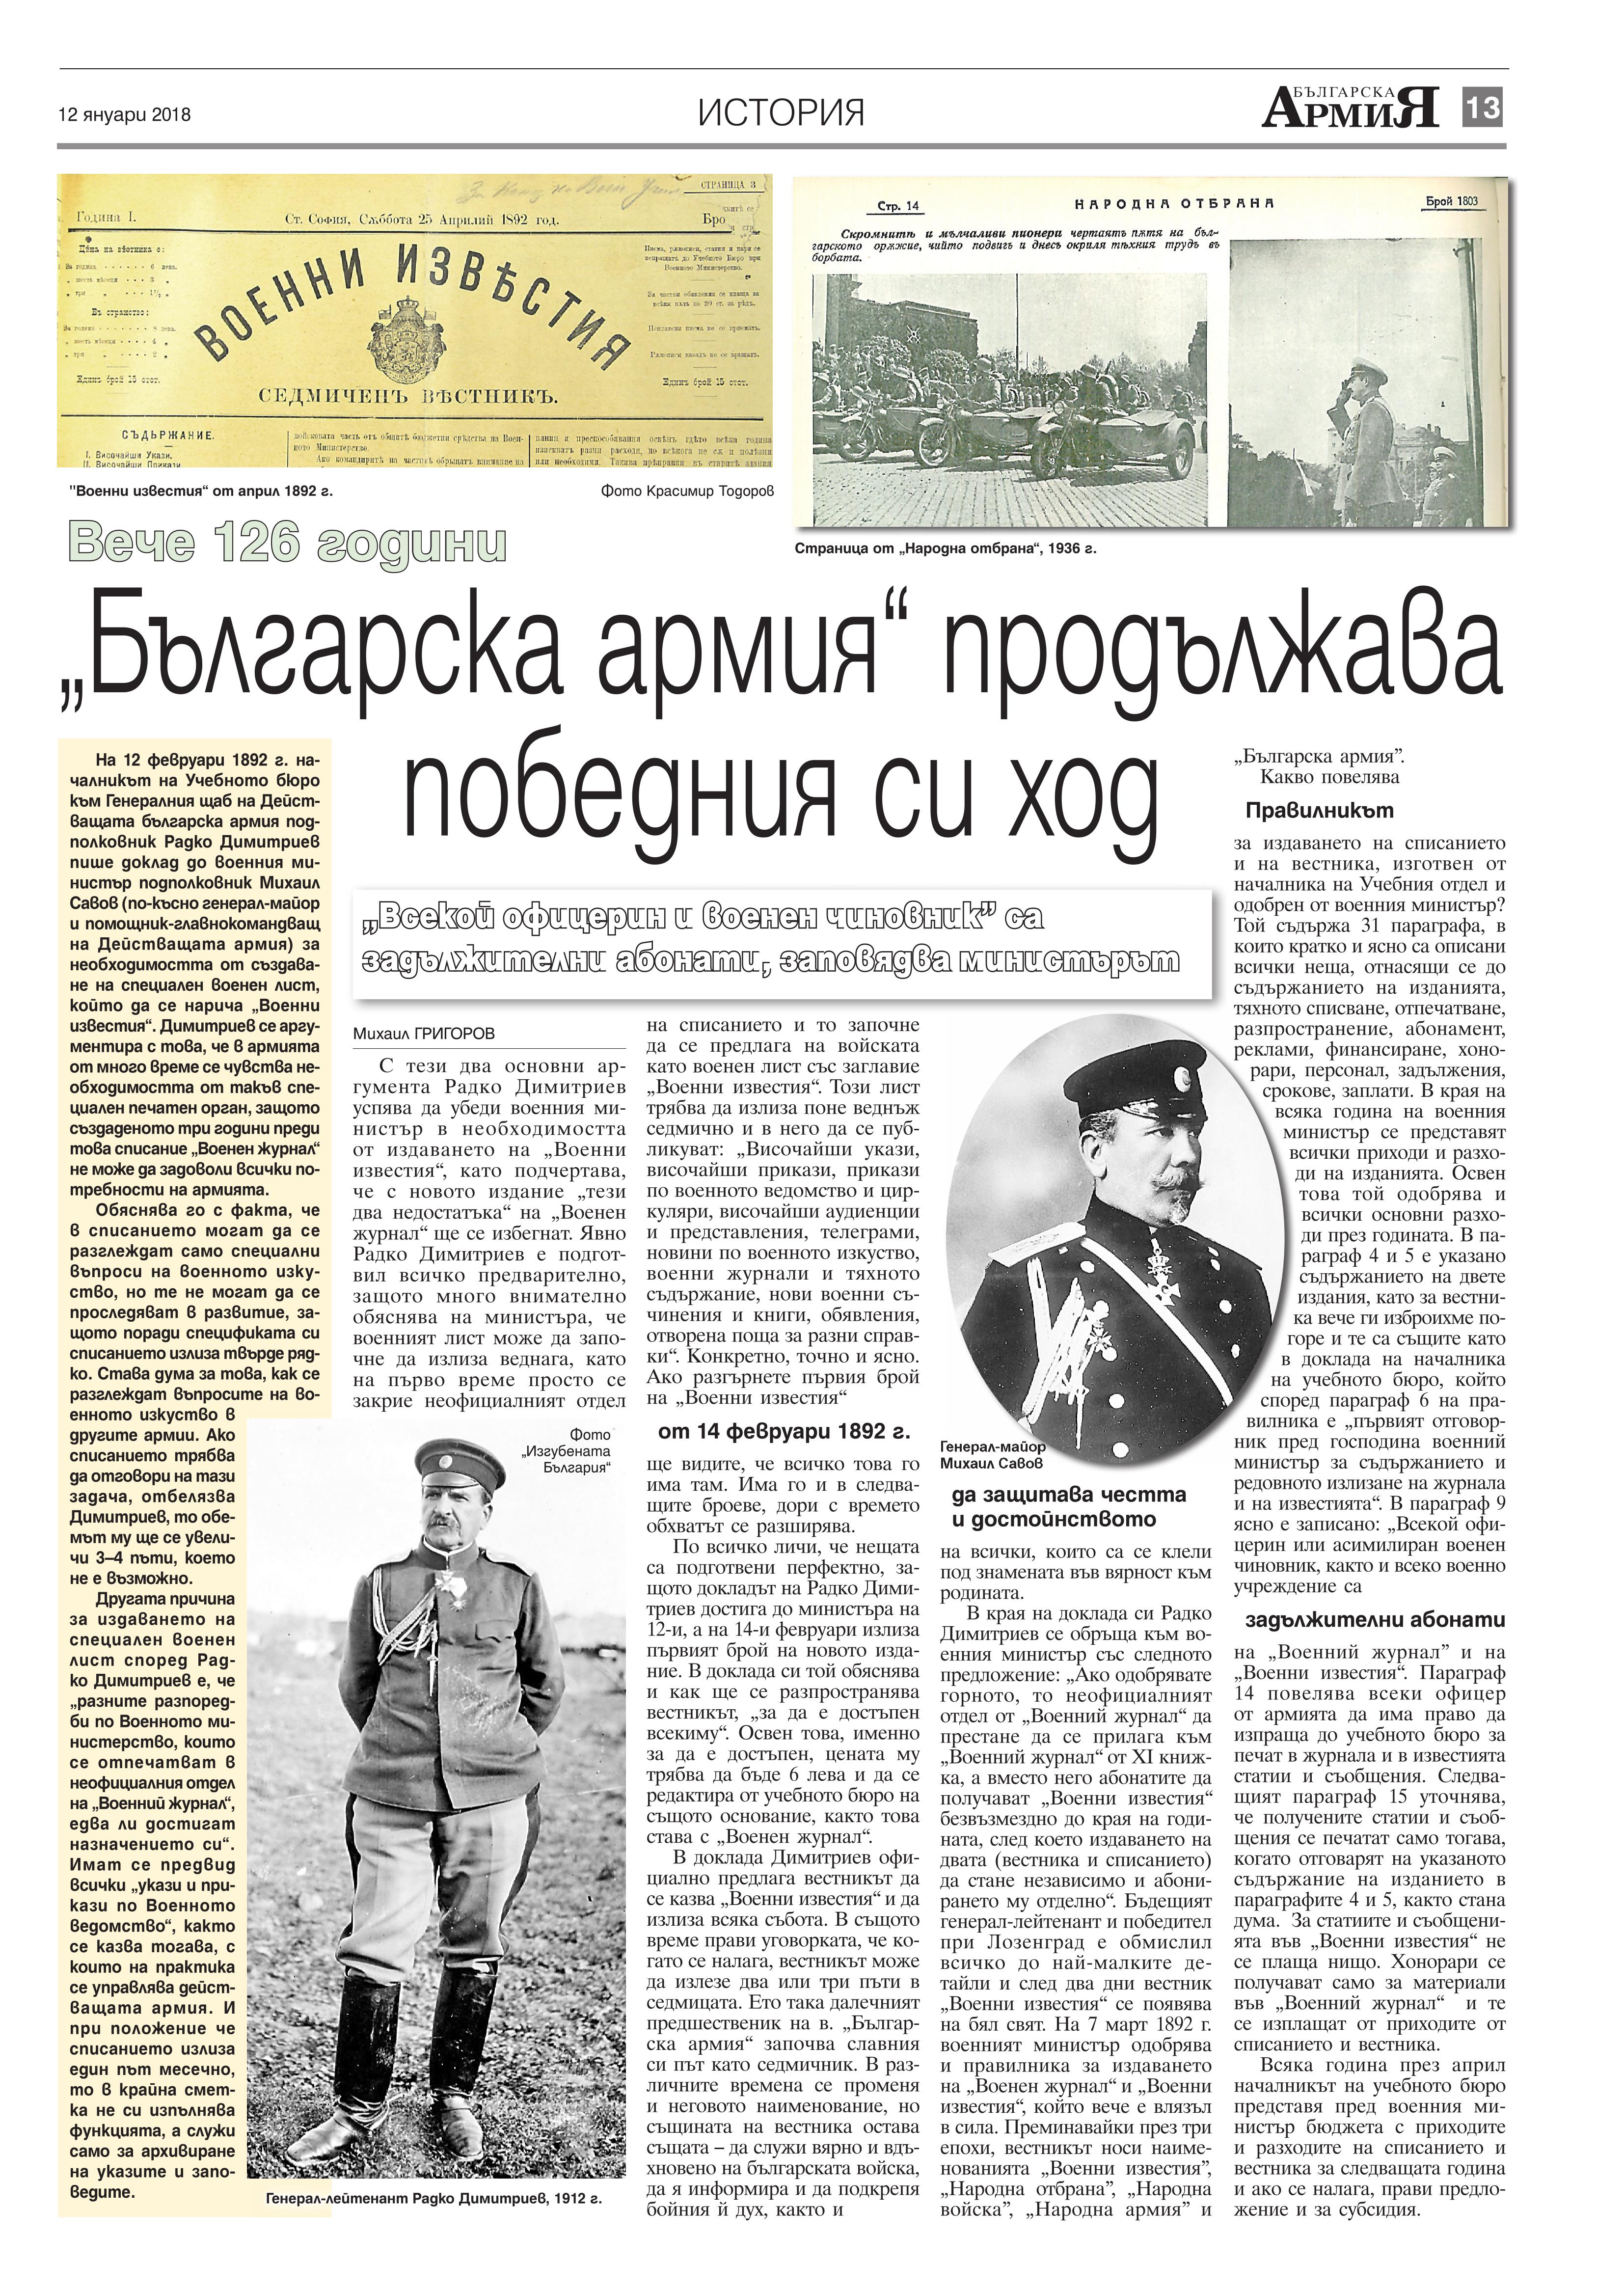 https://armymedia.bg/wp-content/uploads/2015/06/13.page1_-36.jpg